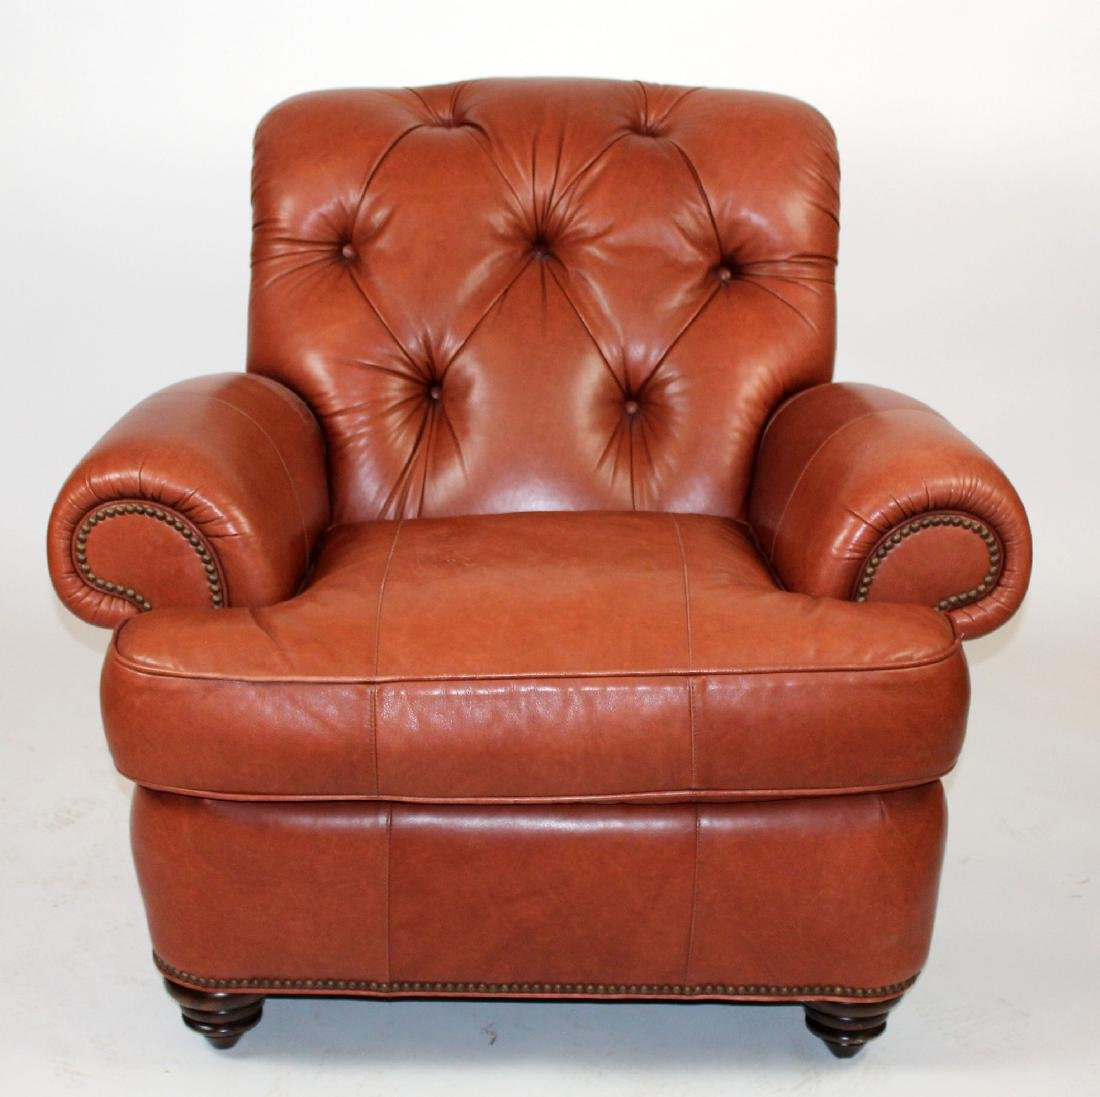 Tufted leather club chair by Mayo Traditions